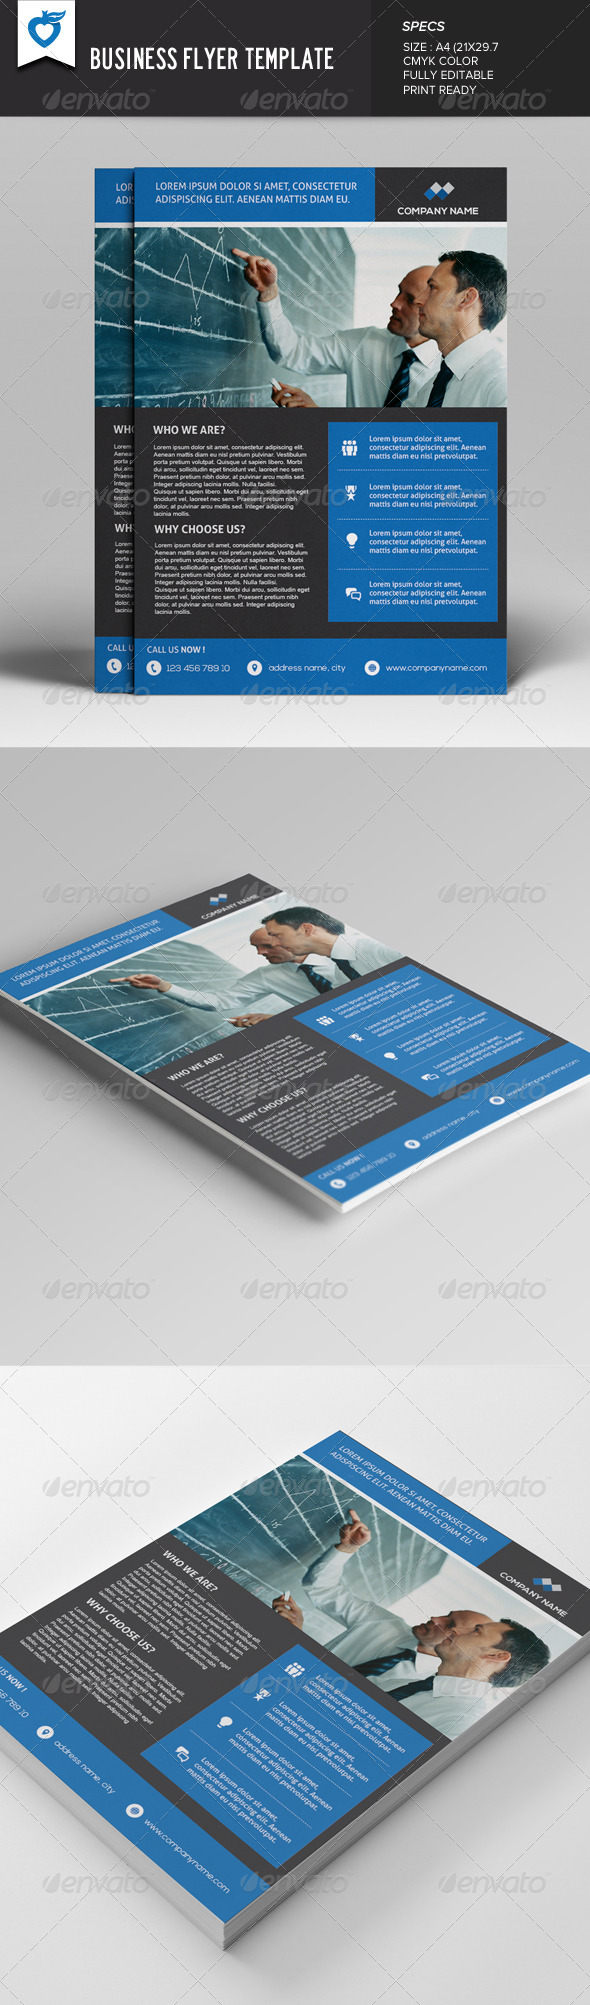 GraphicRiver Business Flyer Template v3 7844597